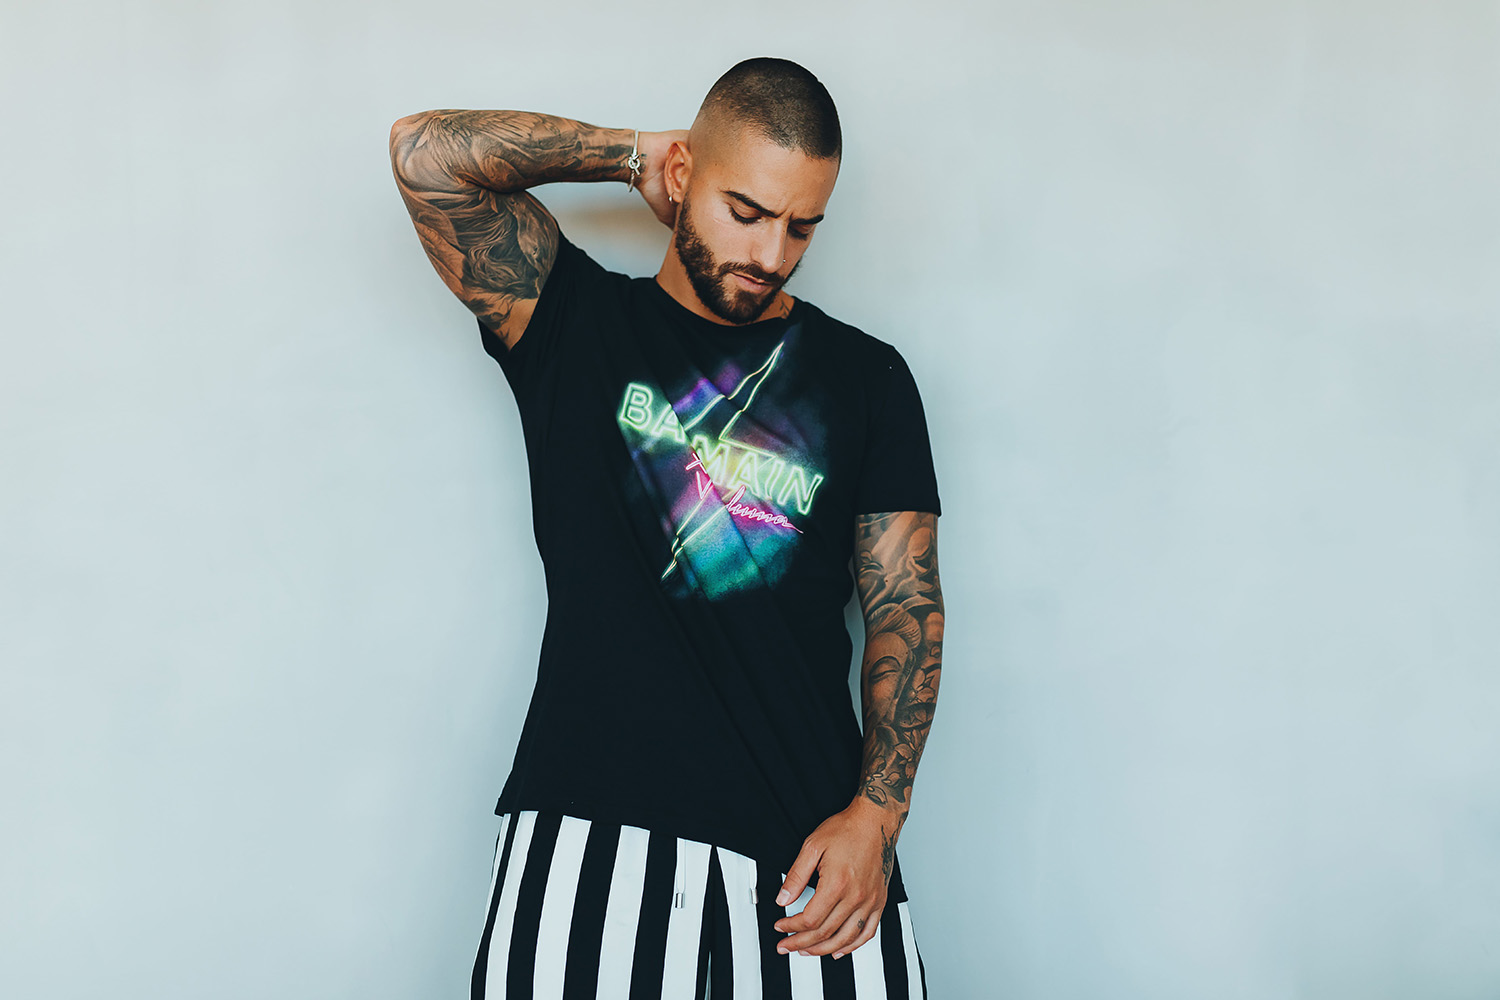 Balmain and Maluma collaborate on a Miami-inspired capsule collection